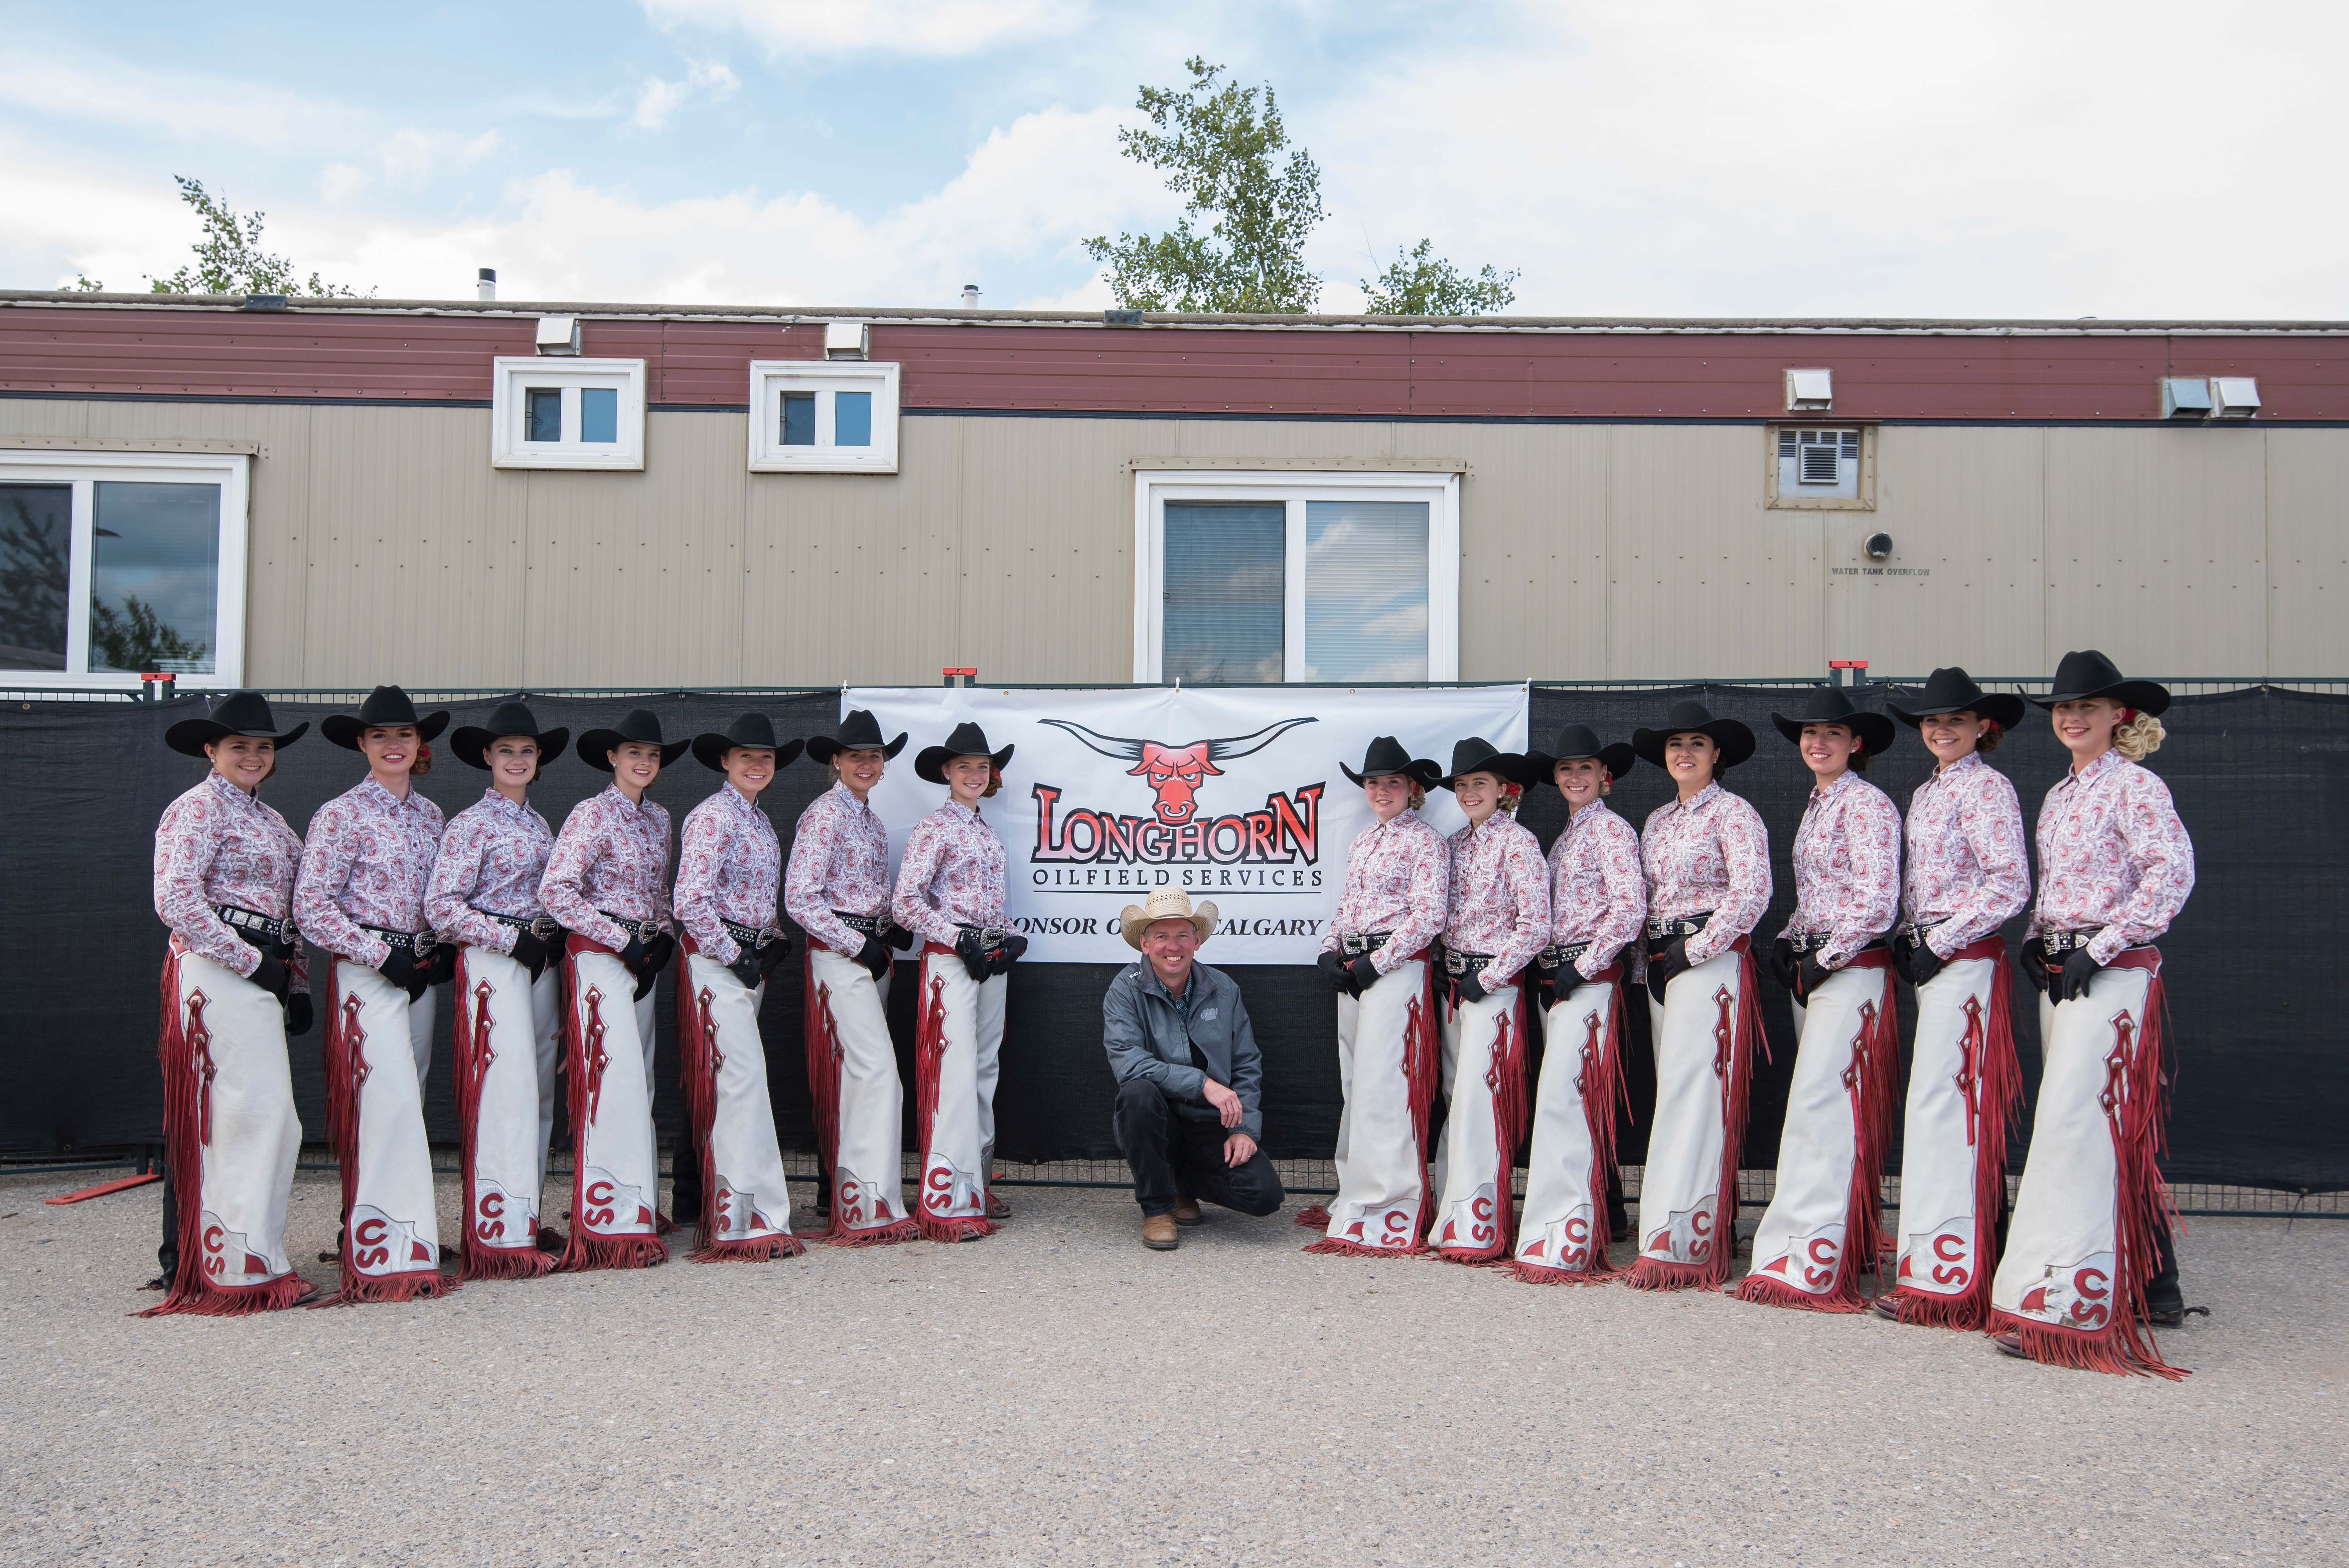 longhorn oilfield services and the calgary stampede showriders